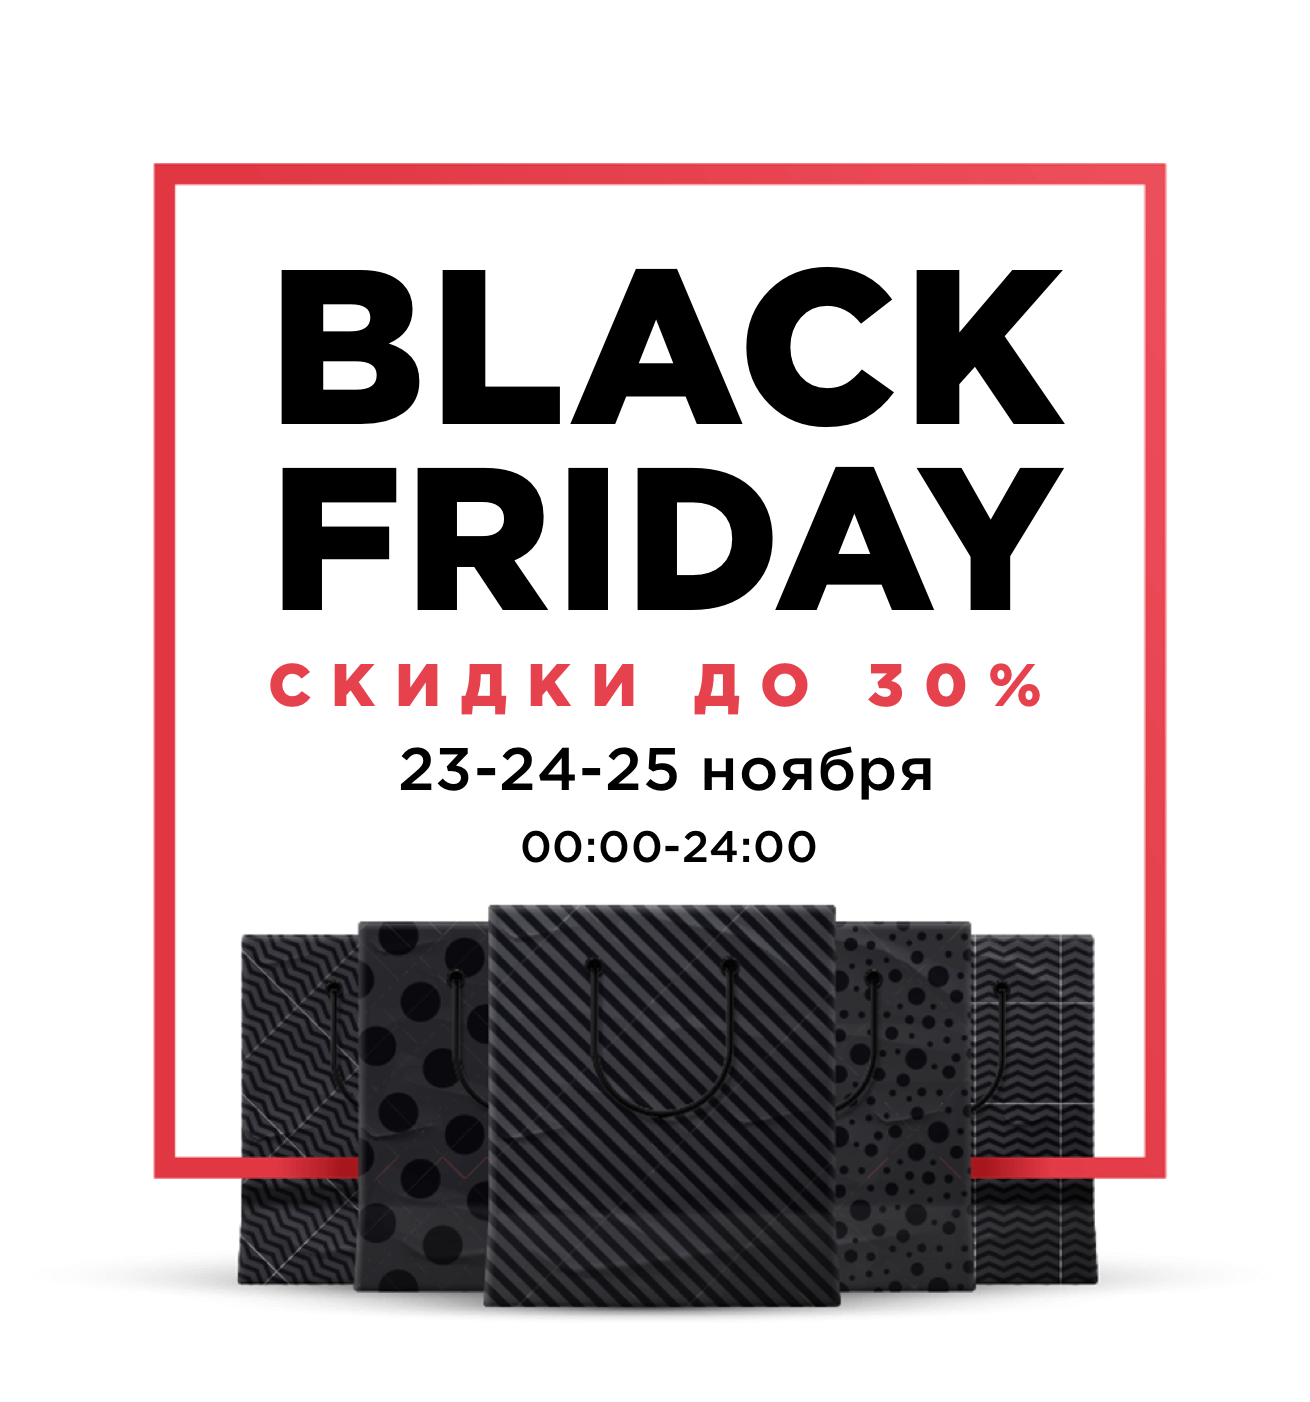 Black Friday by SeeArsi